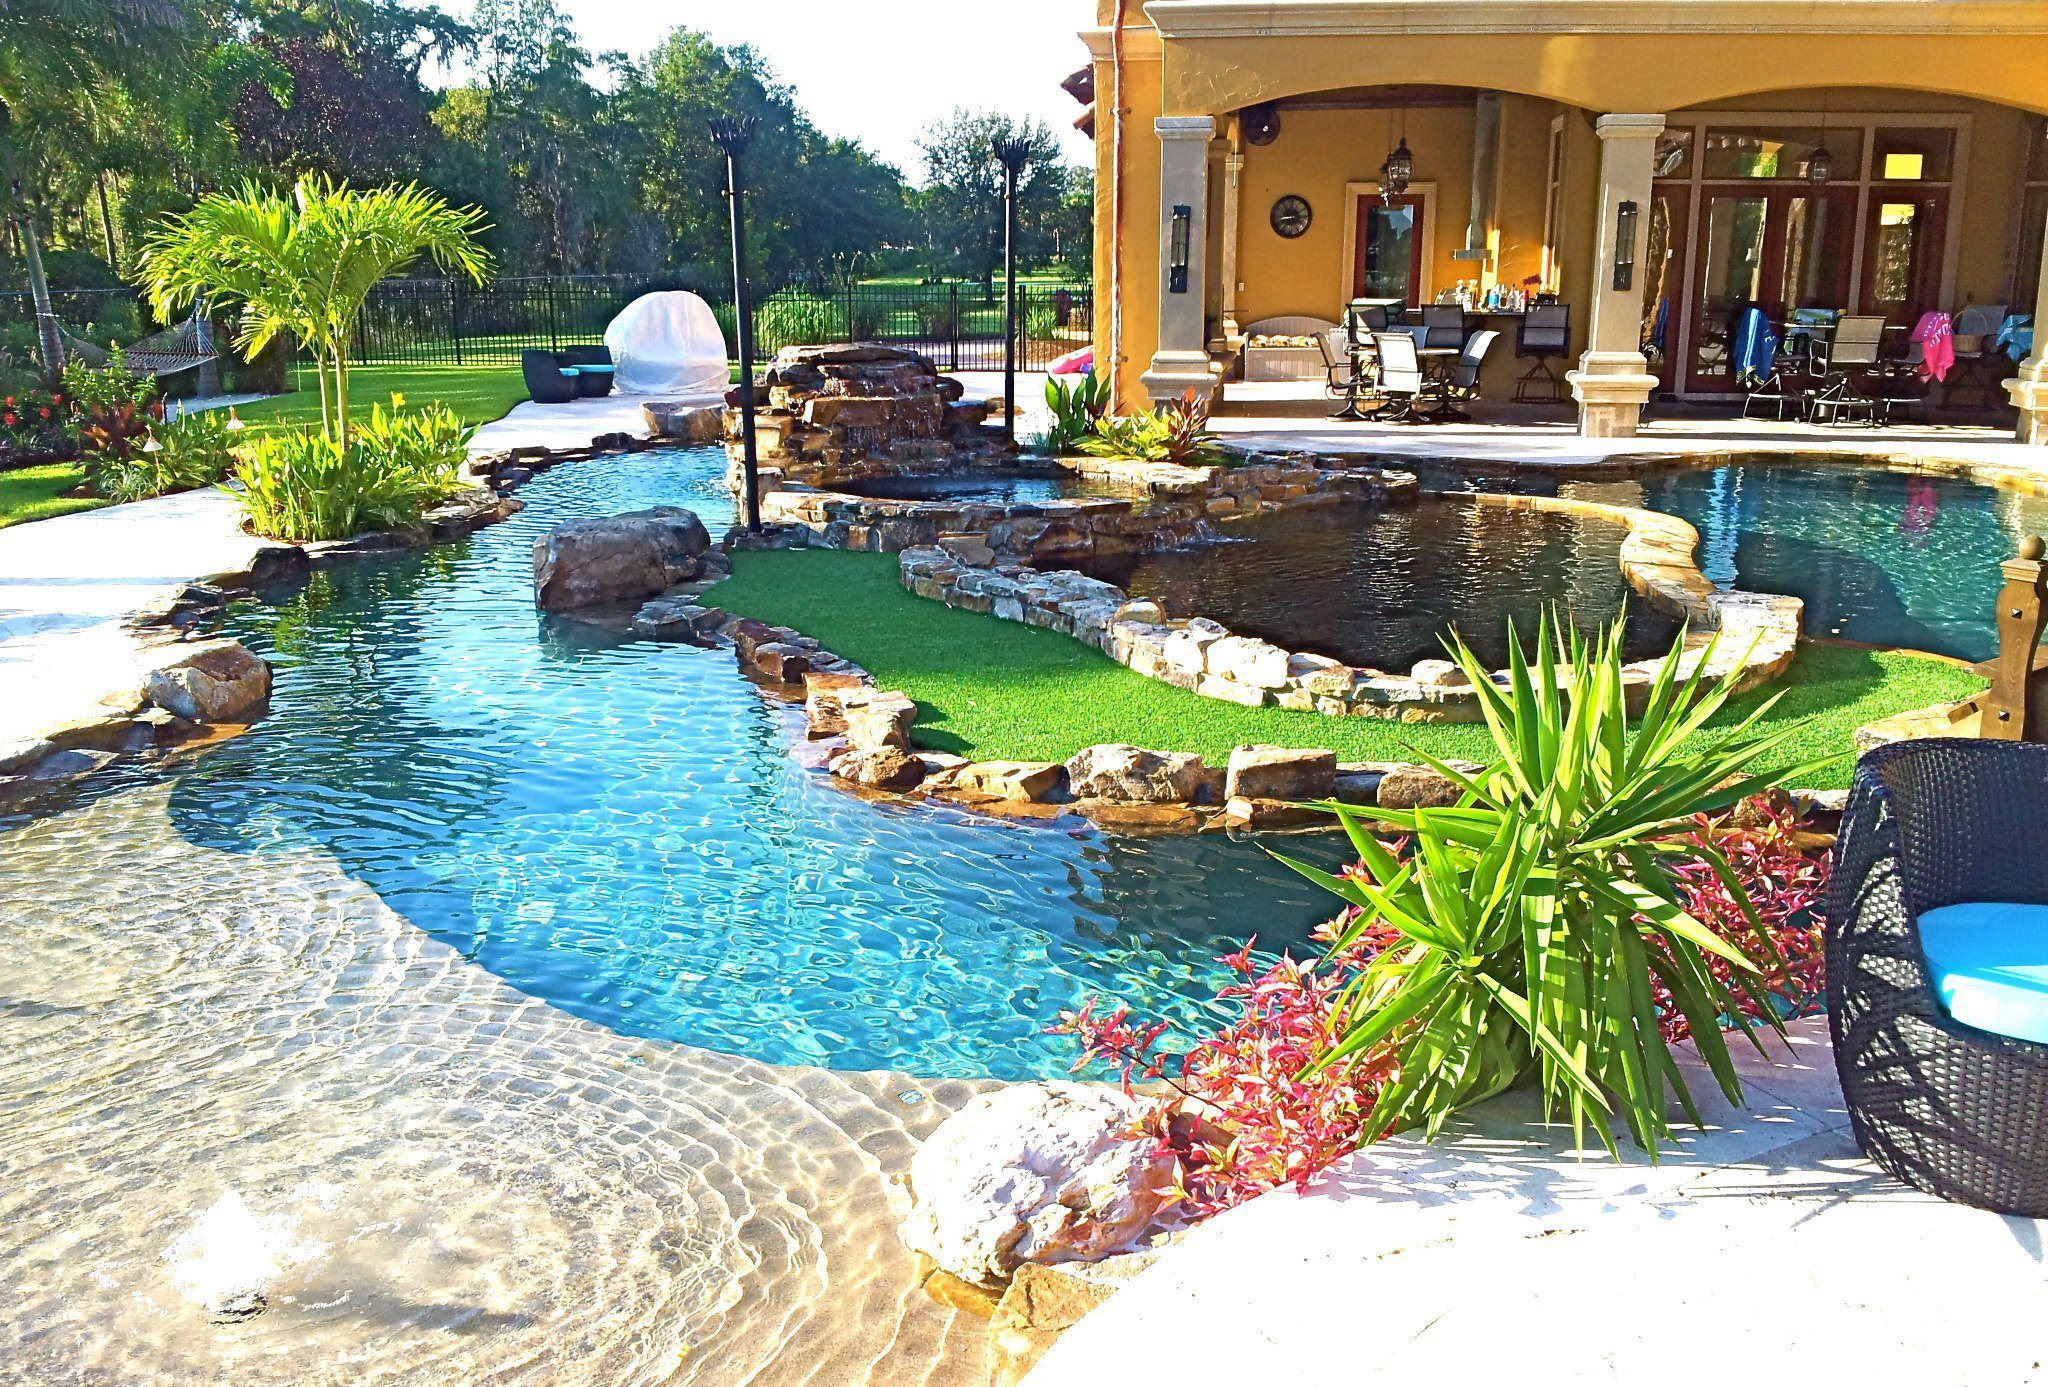 Jacuzzi In The Pool Backyard Oasis Lazy River Pool With Island Lagoon And Jacuzzi In